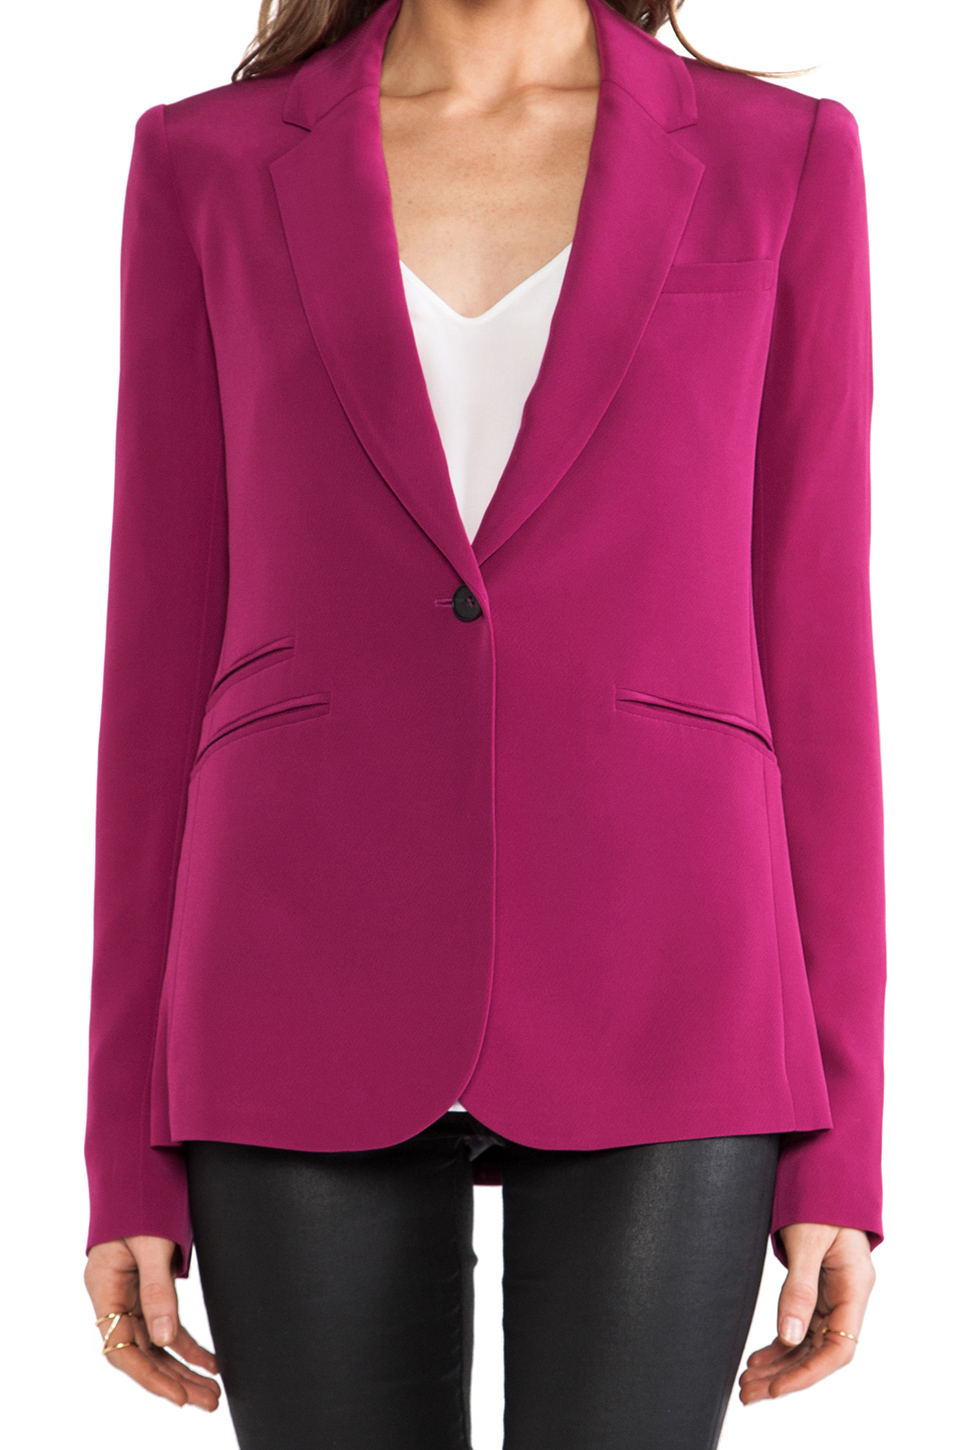 Elizabeth and James Rex Blazer with Colored Lining in Raspberry